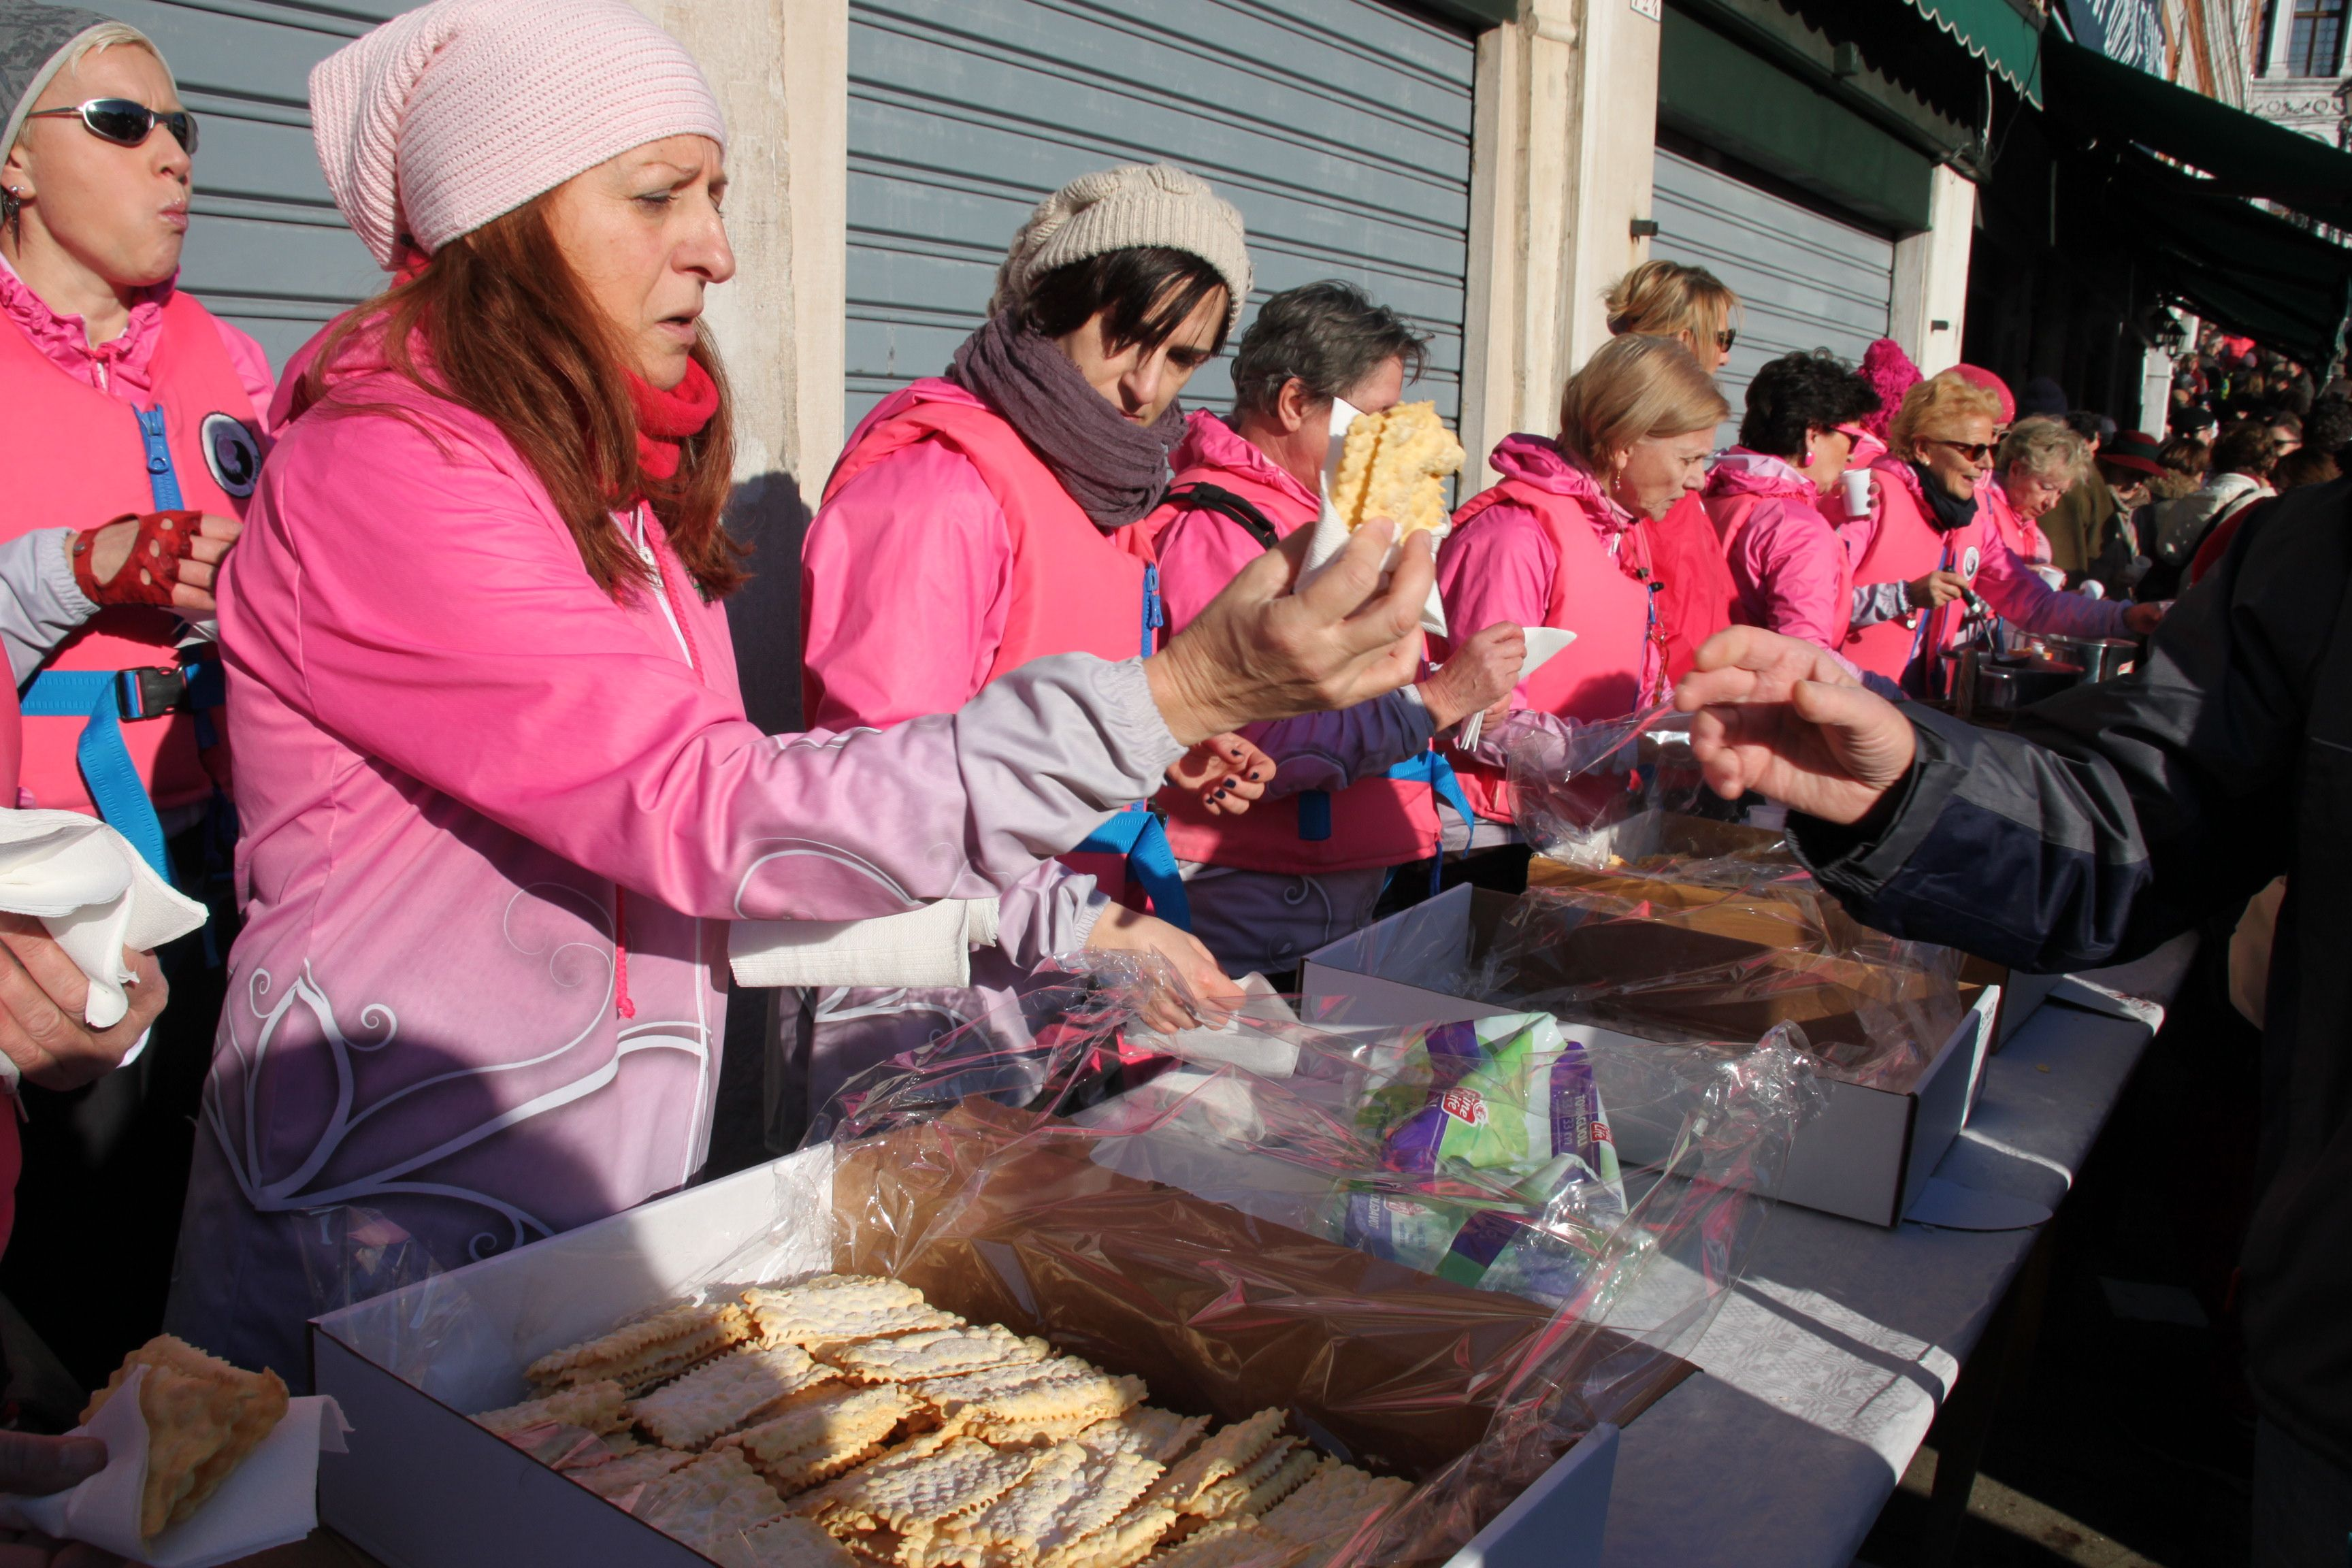 Venice's Pink Ladies dragon boat rowers hand out sugared biscuits